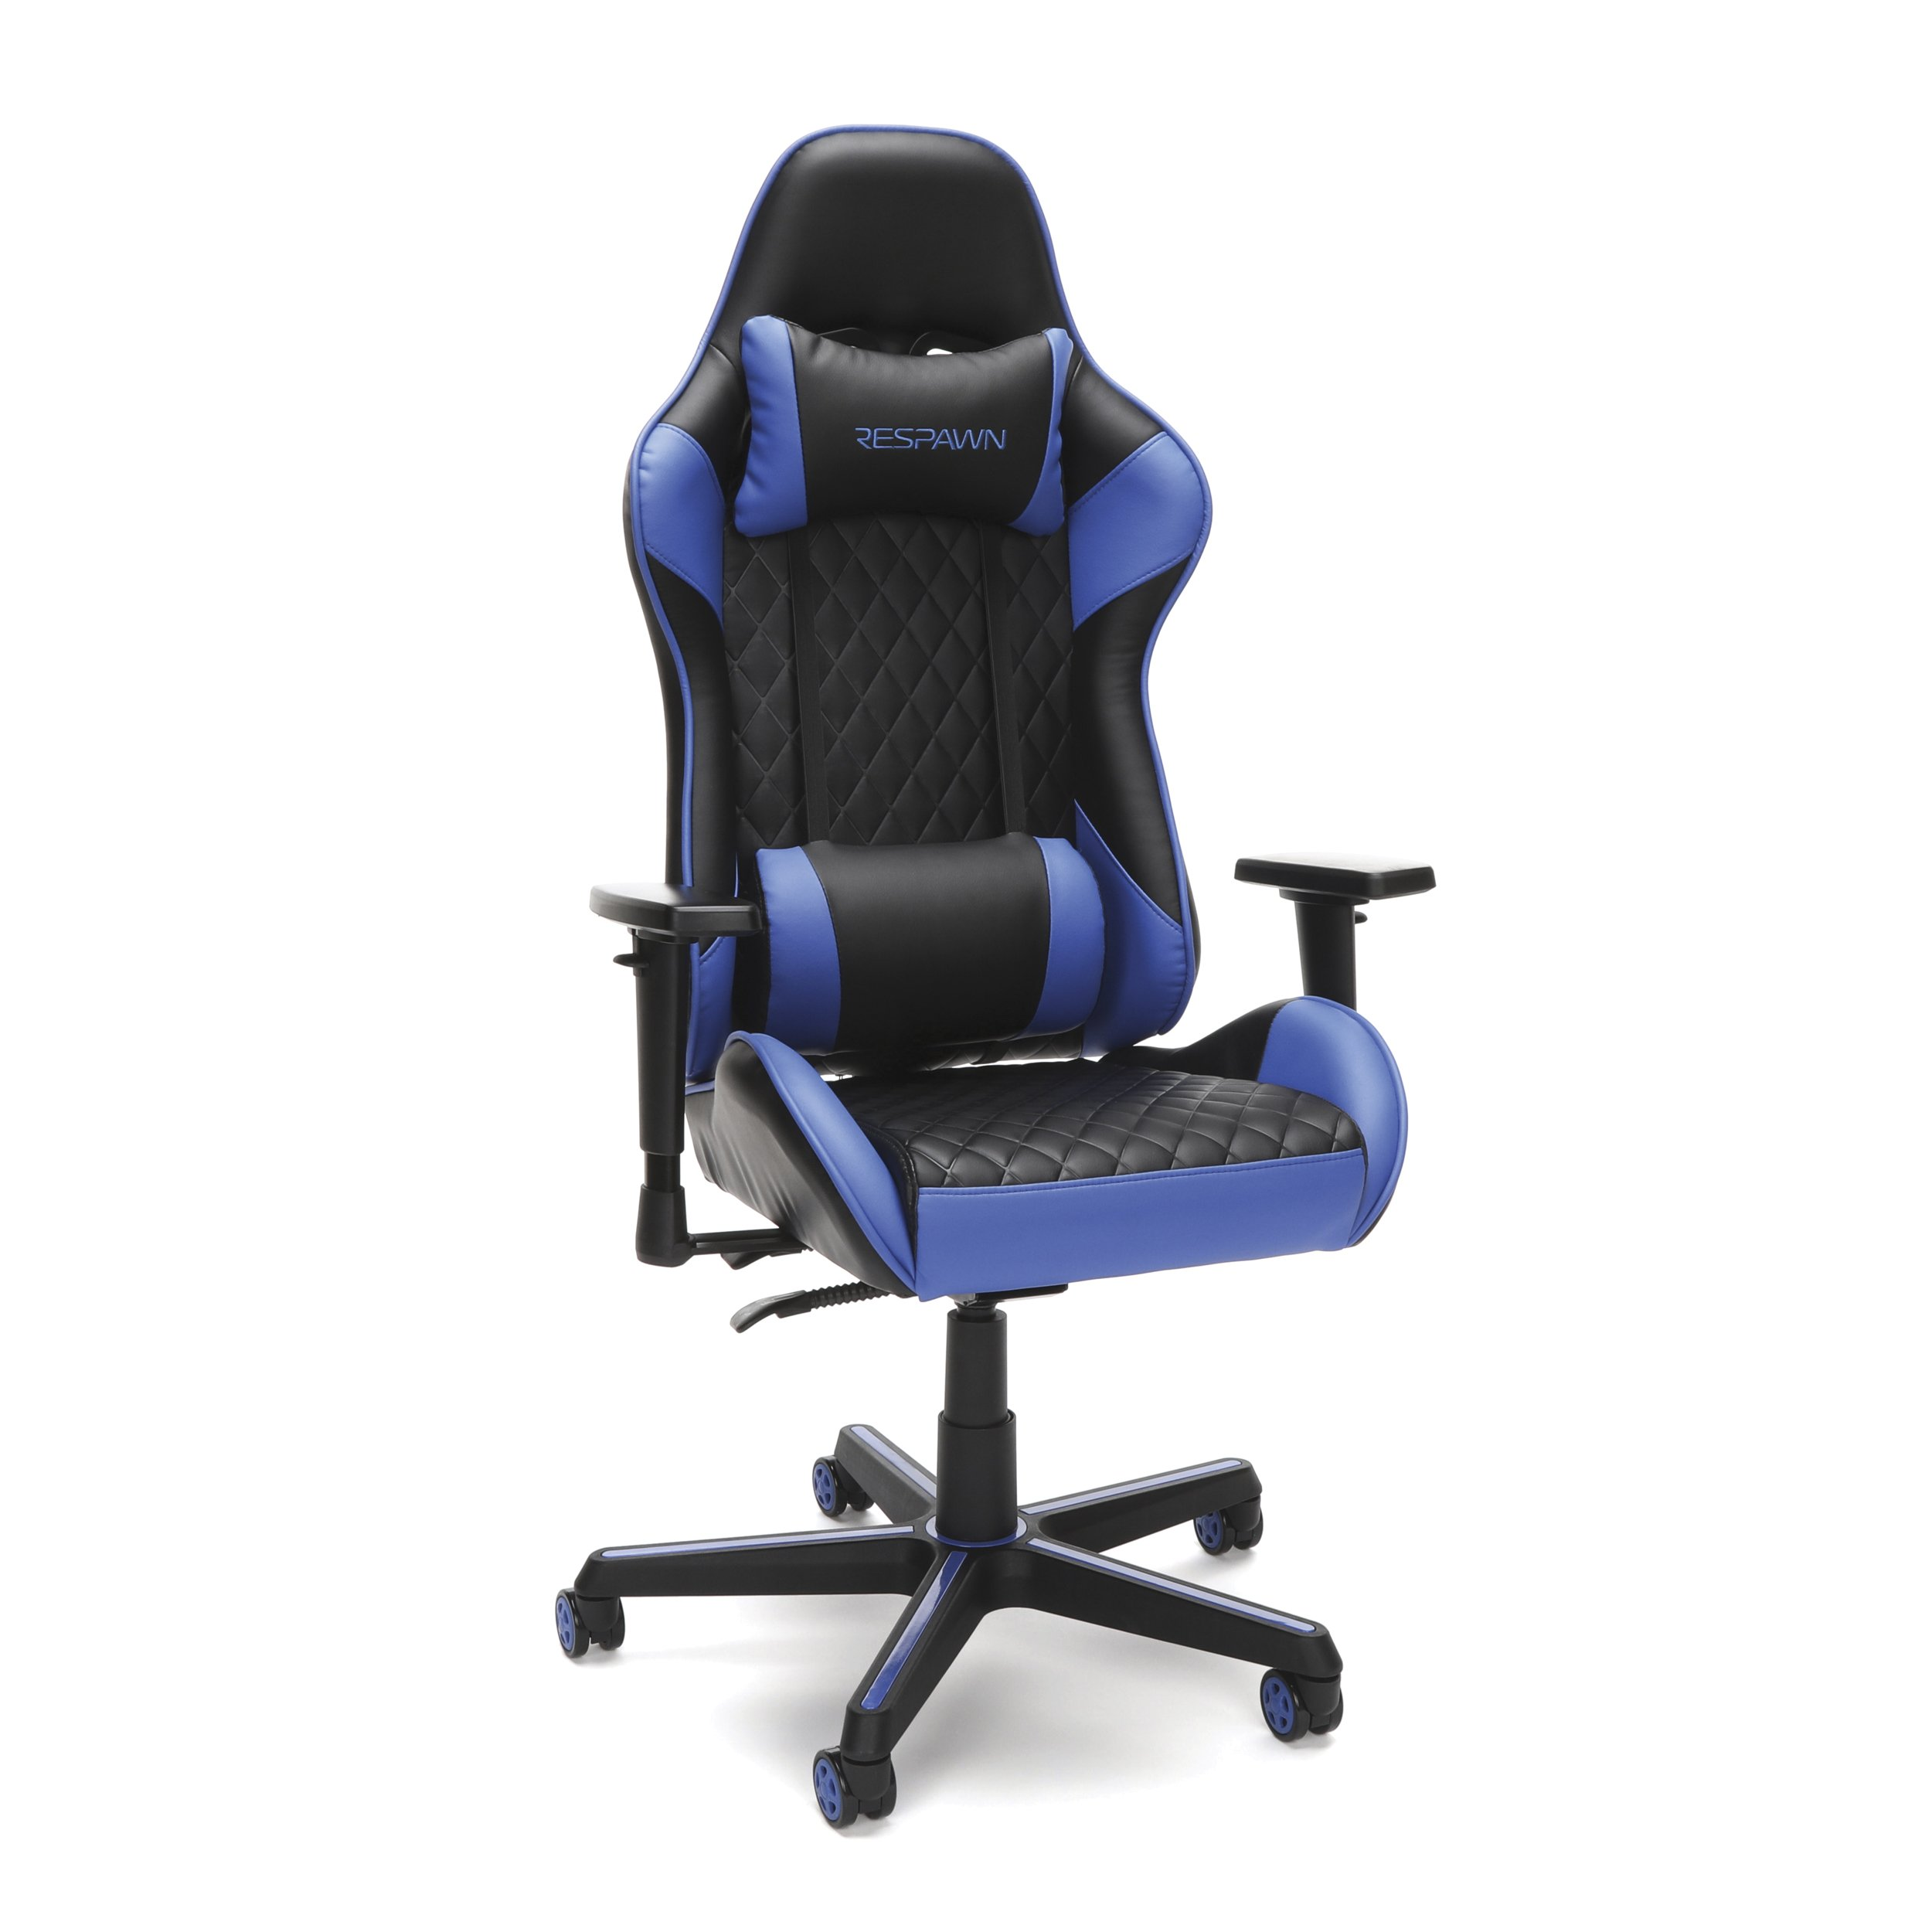 RESPAWN-100 Racing Style Gaming Chair - Reclining Ergonomic Leather Chair, Office or Gaming Chair (RSP-100-BLU)